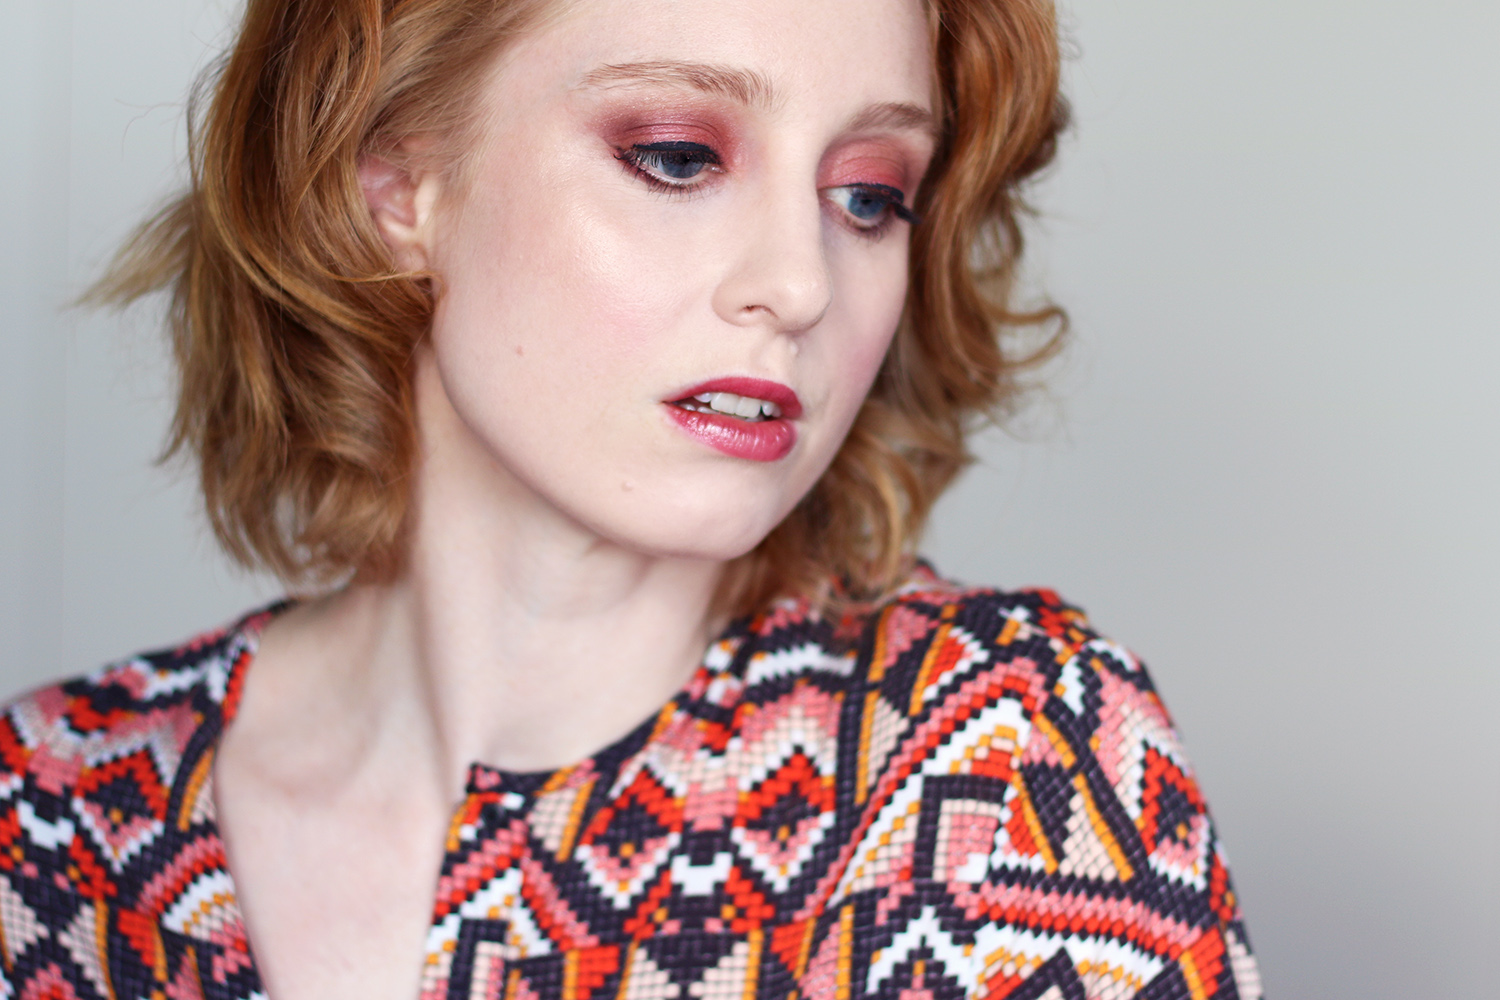 beni durare, supermodel, Lippenlack, margeaux, Swatch, Herbsttrend Make-up, Rot, Rostrot, helle Haut, empfindliche Haut, rote Haare, Makeup Tipps, Beauty Tipps, Makeup Tutorial, Beautyblog, Berlin, Influencer, Mondays Makeup, Advance Your Style